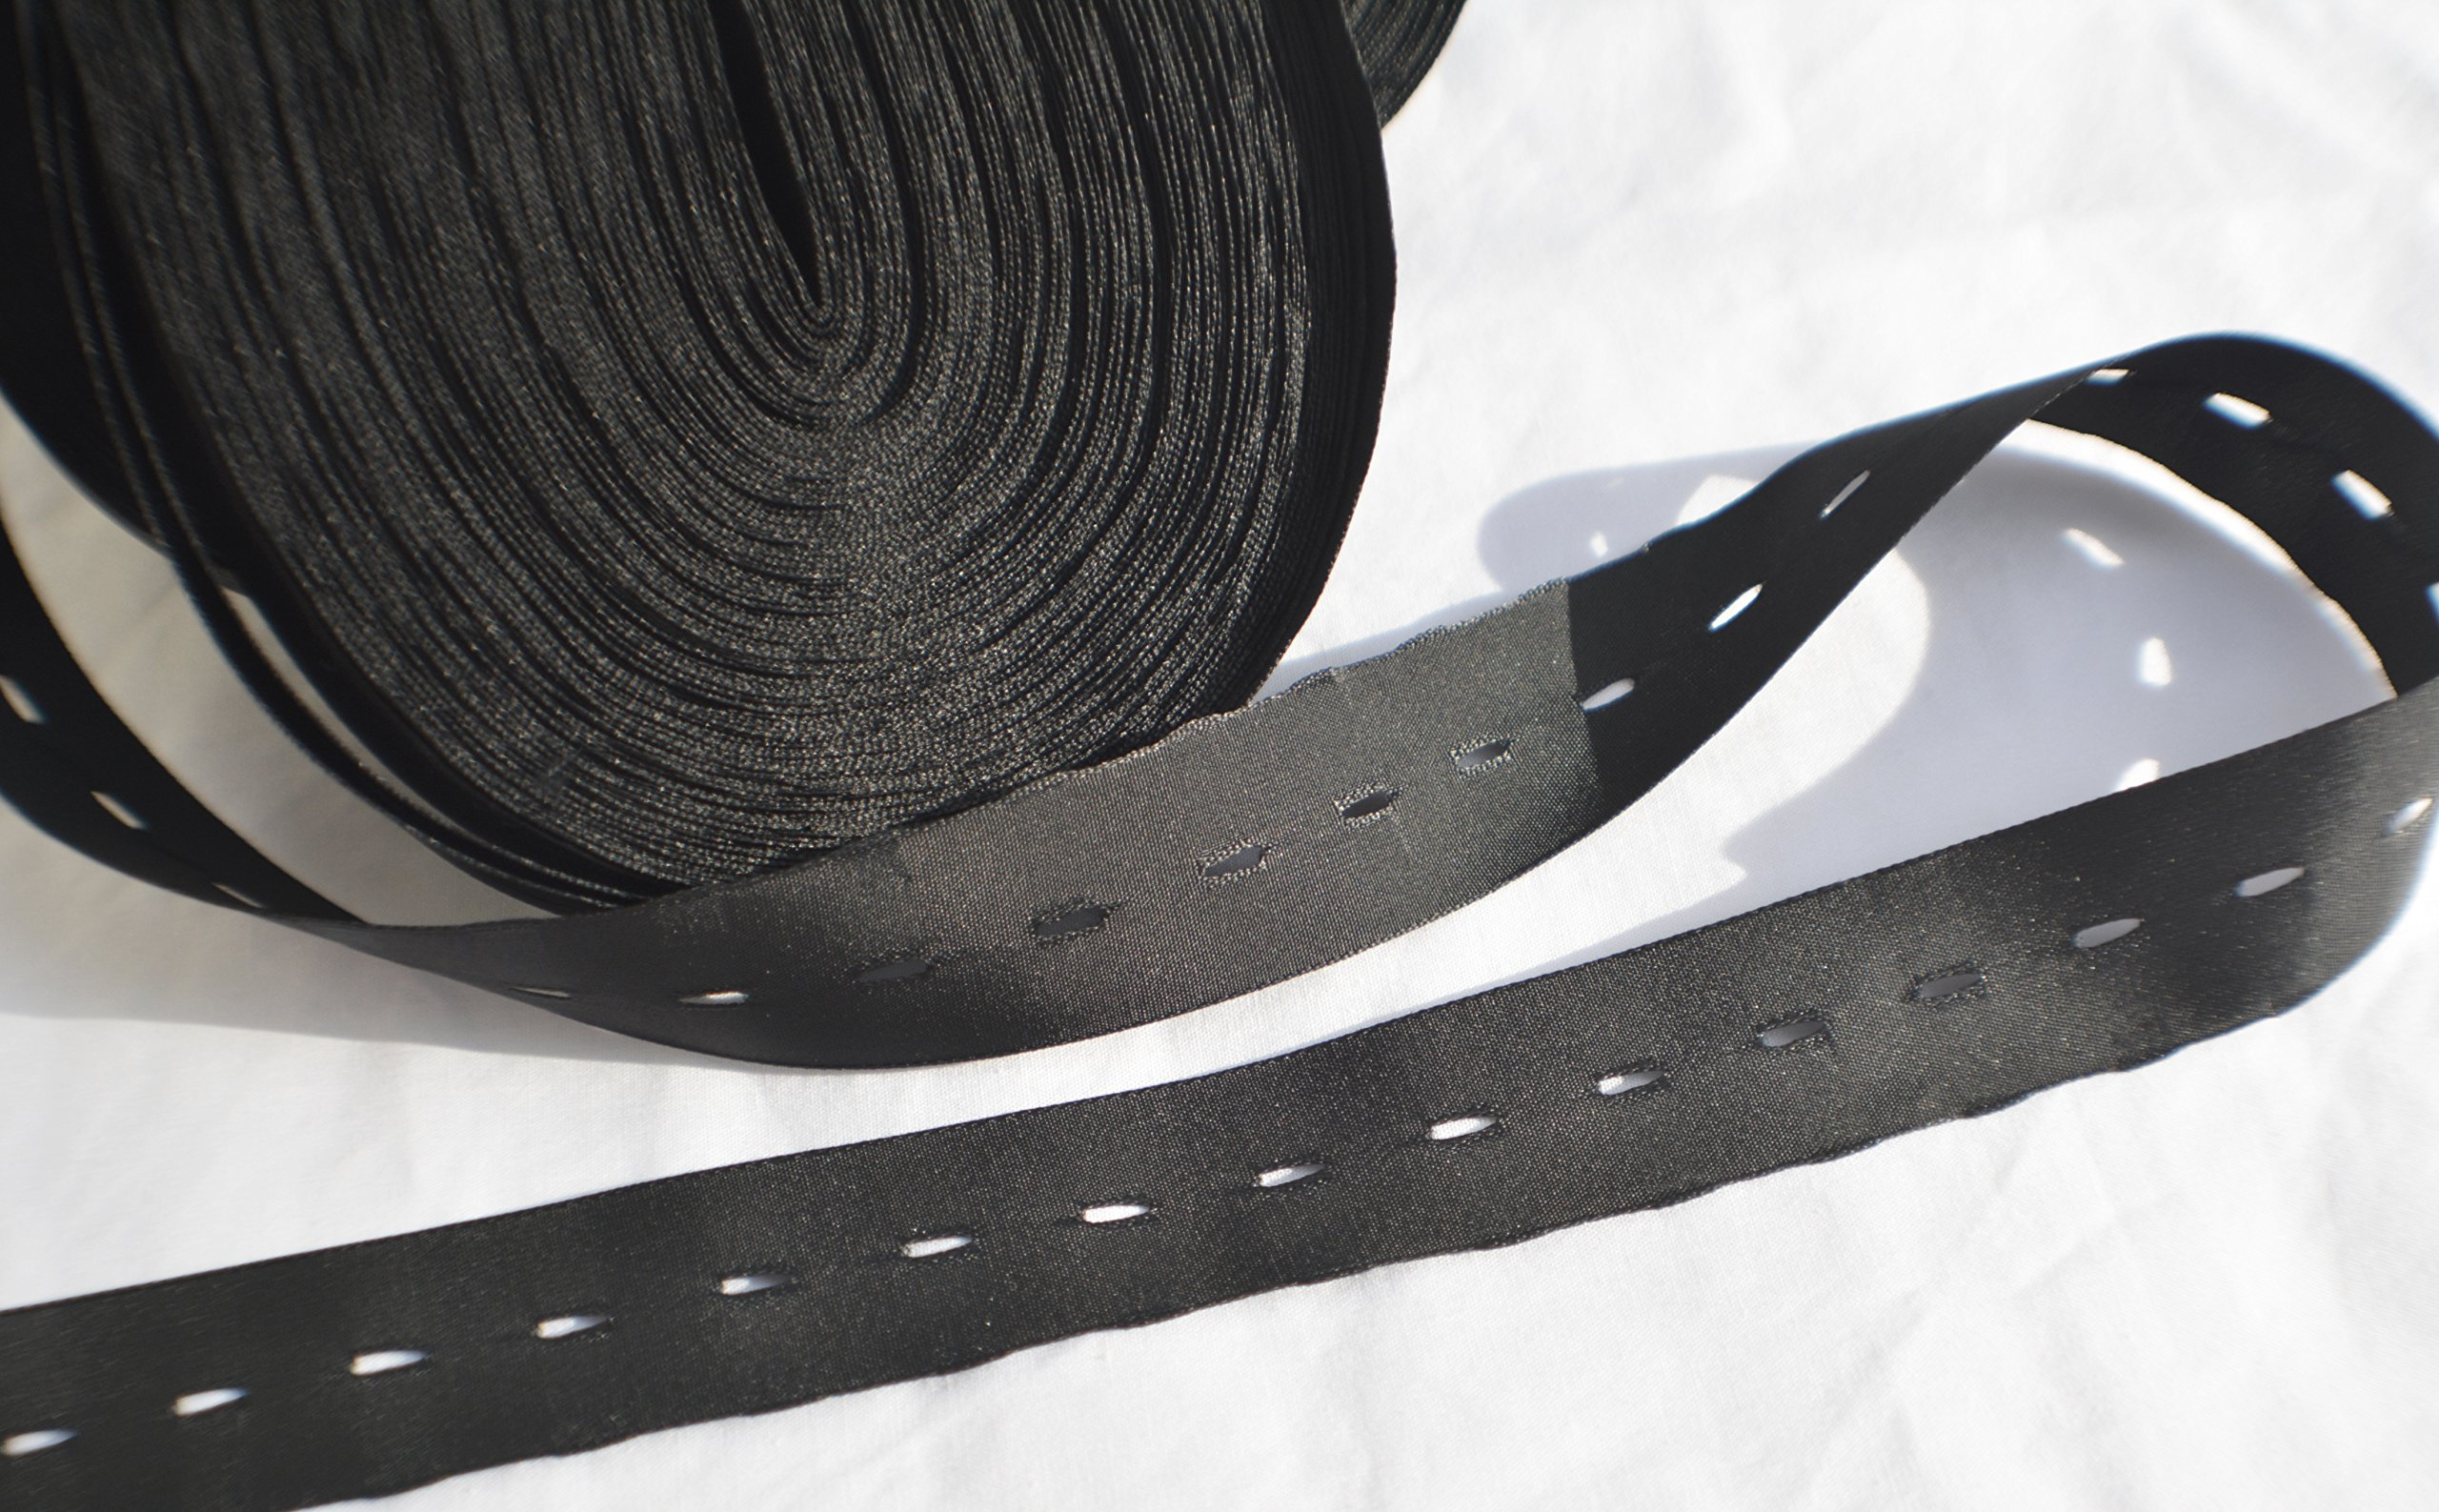 20mm (3/4'') SILK BOW TIE SIZE ADJUSTMENT RIBBONS with Hardware (Eye and T-hook) - choose 25 / 50 / 100 yards (50 Yards + 150 sets/hardware)